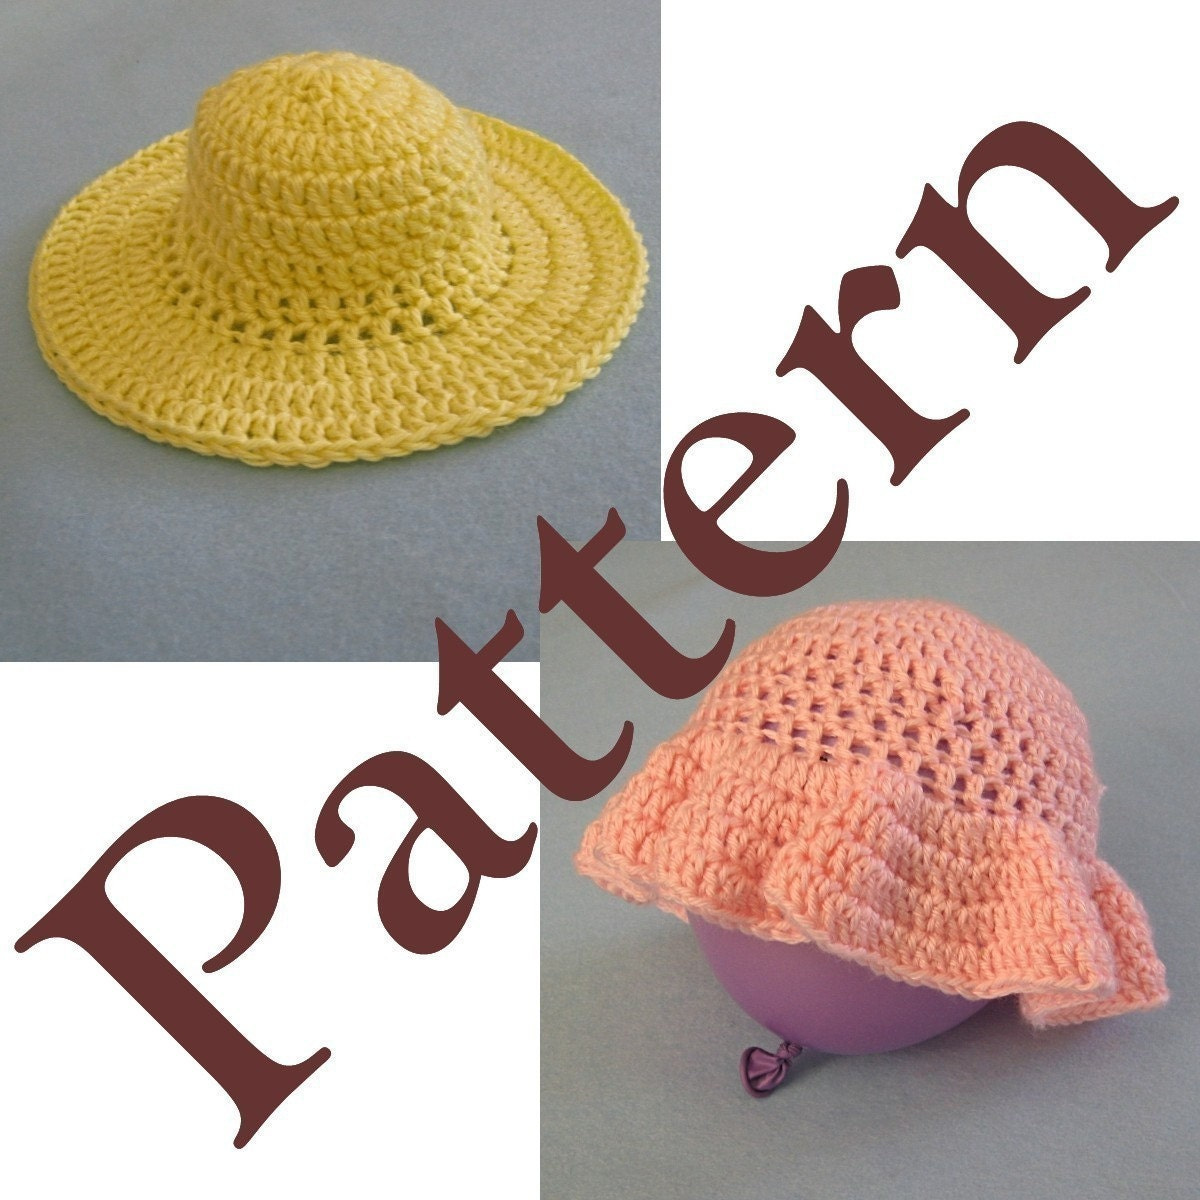 How to Crochet Baby Hats | eHow.com